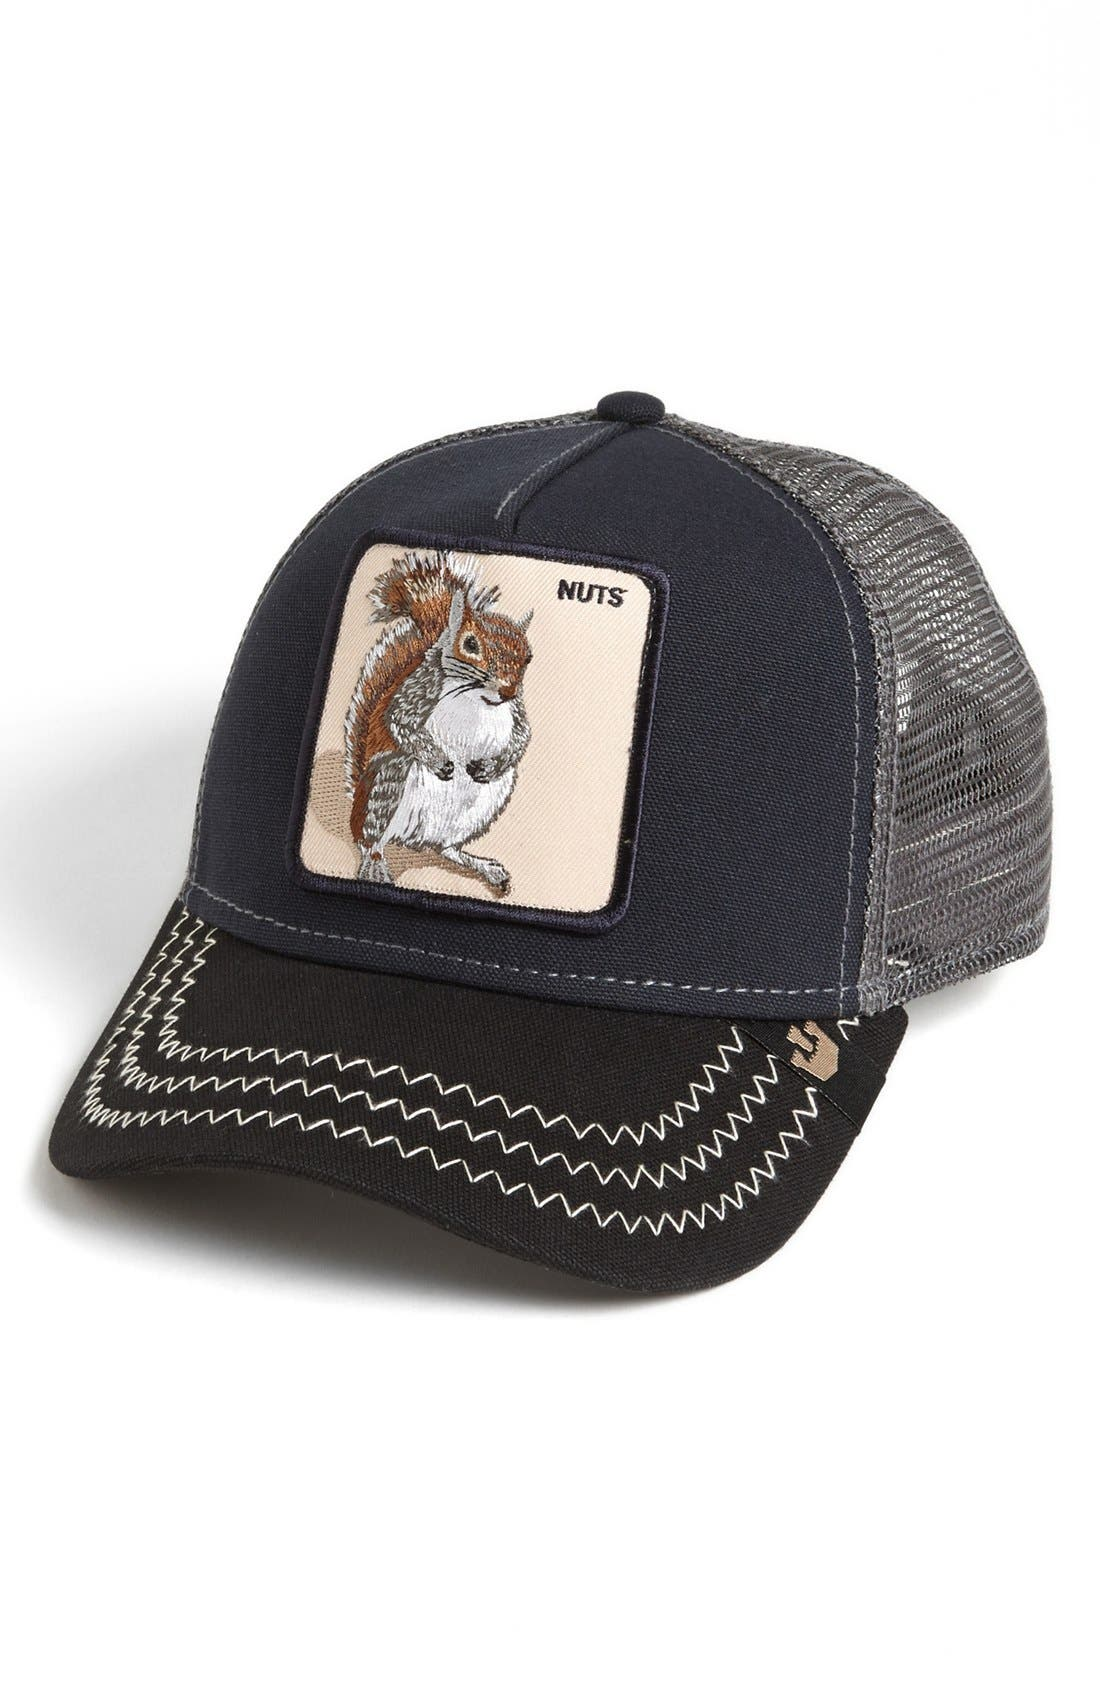 GOORIN BROTHERS 'Animal Farm - Squirrel Master' Snapback